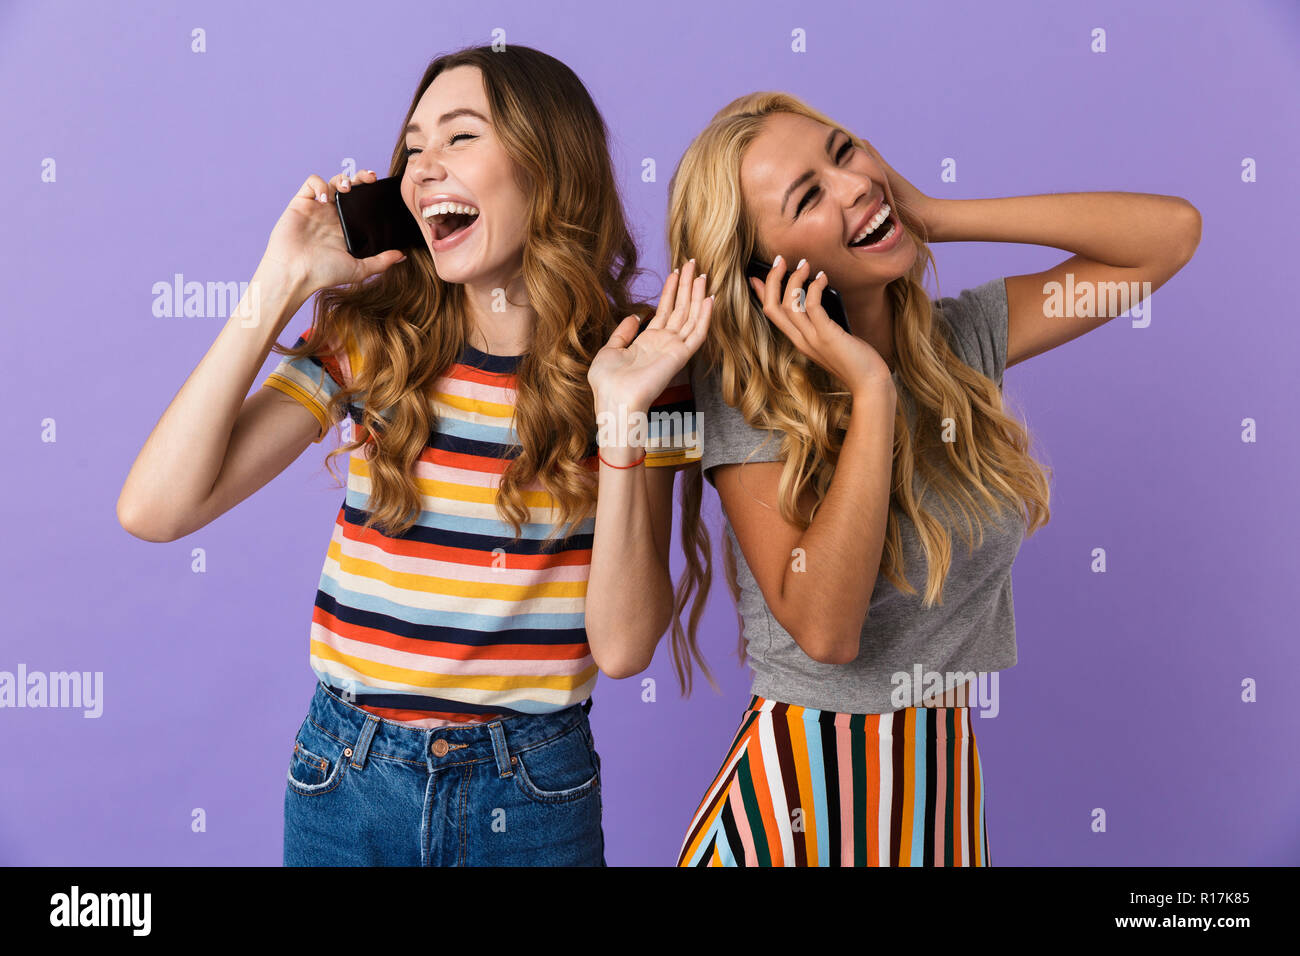 Two pretty laughing young girls friends standing isolated